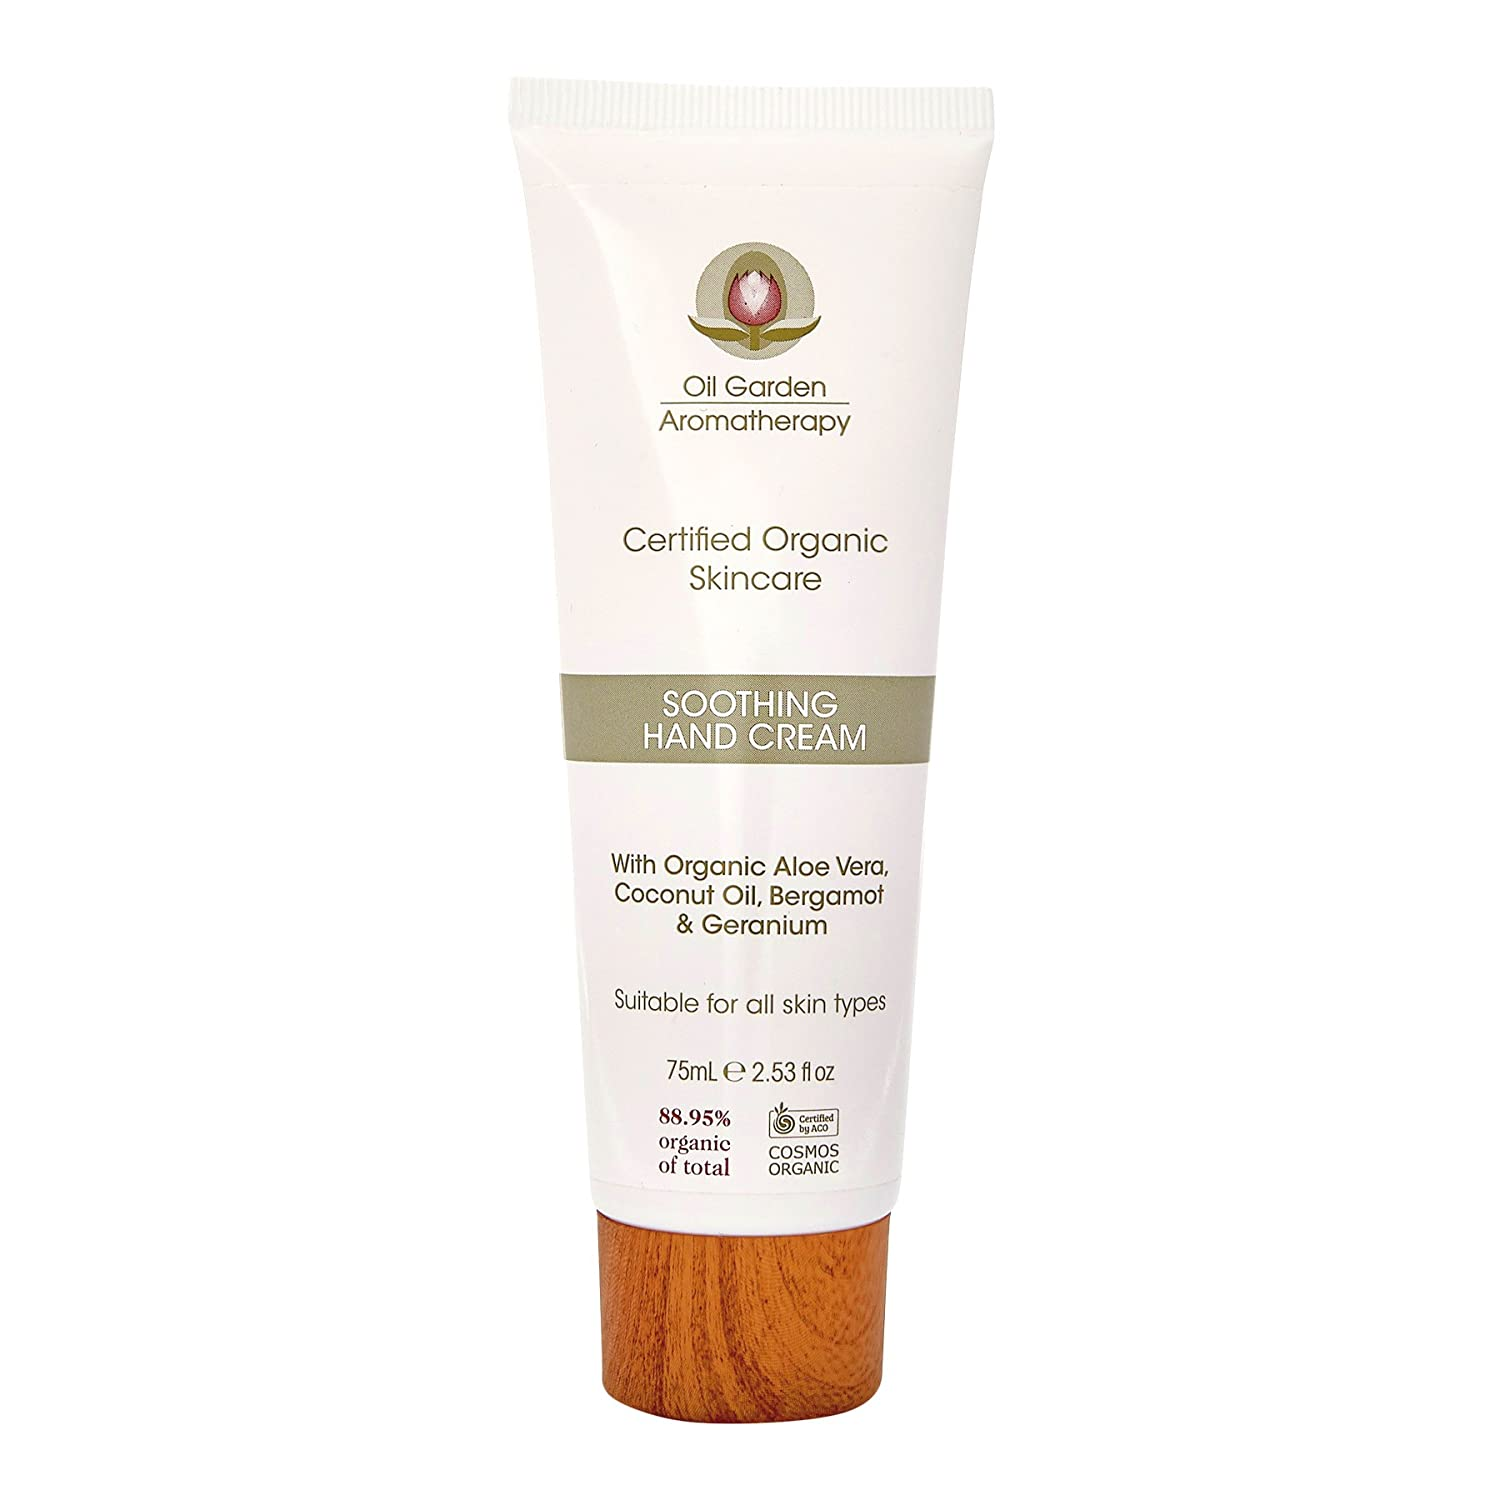 Oil Garden Organic Soothing Hand Cream Natural Nourishing Hand Skin Care with Shea Butter